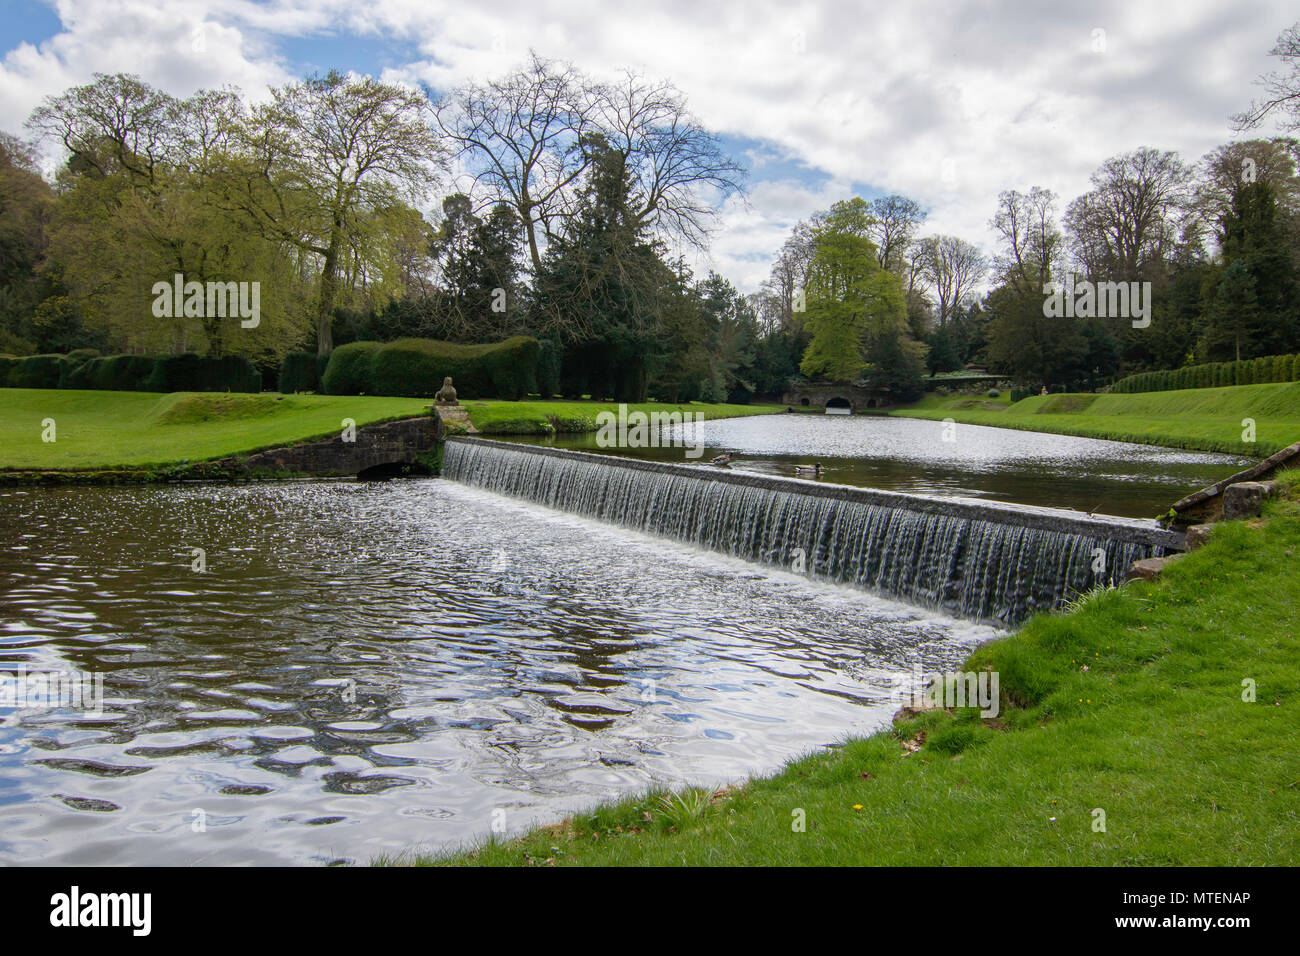 River Skell Weir in the grounds of Studley Royal,Ripon,North Yorkshire,England,UK. - Stock Image